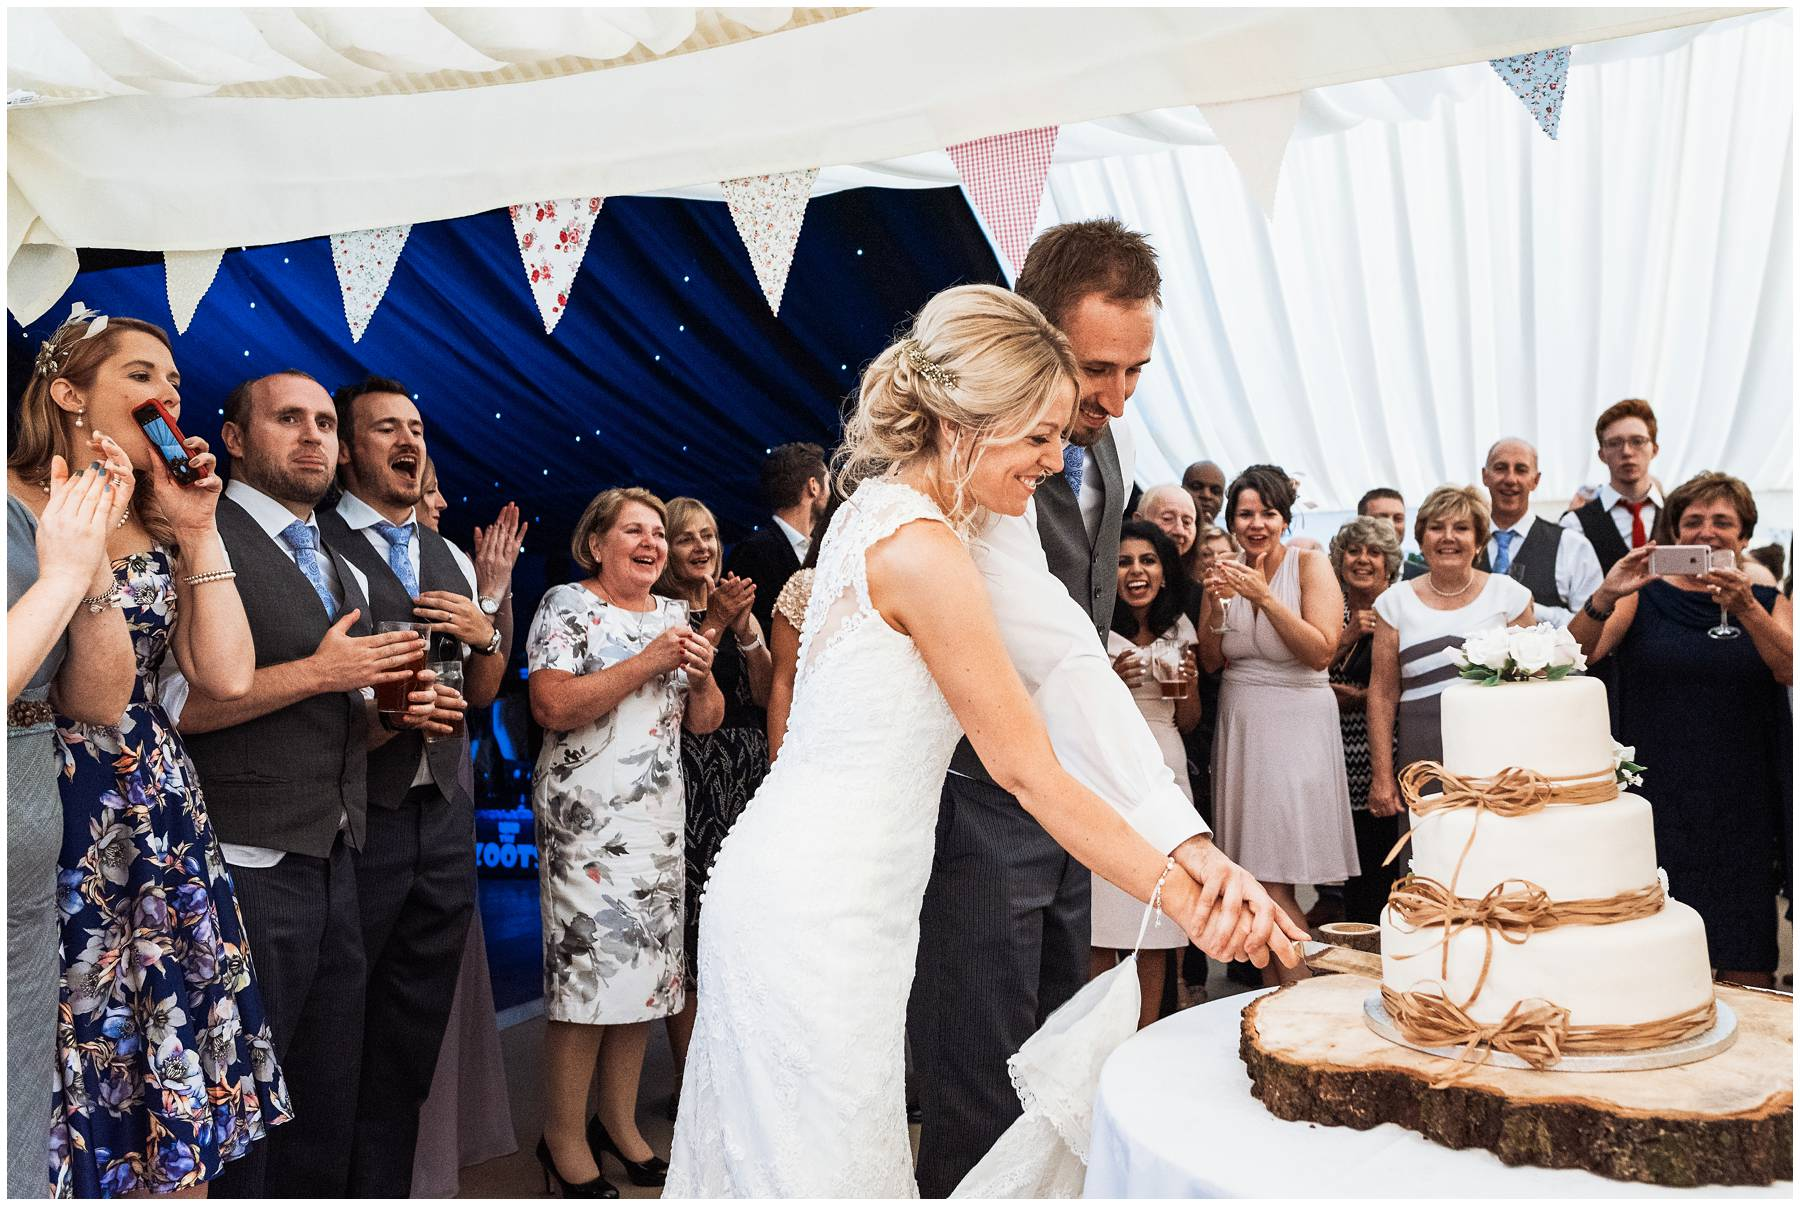 Cake cutting at Spetchley Park Wedding